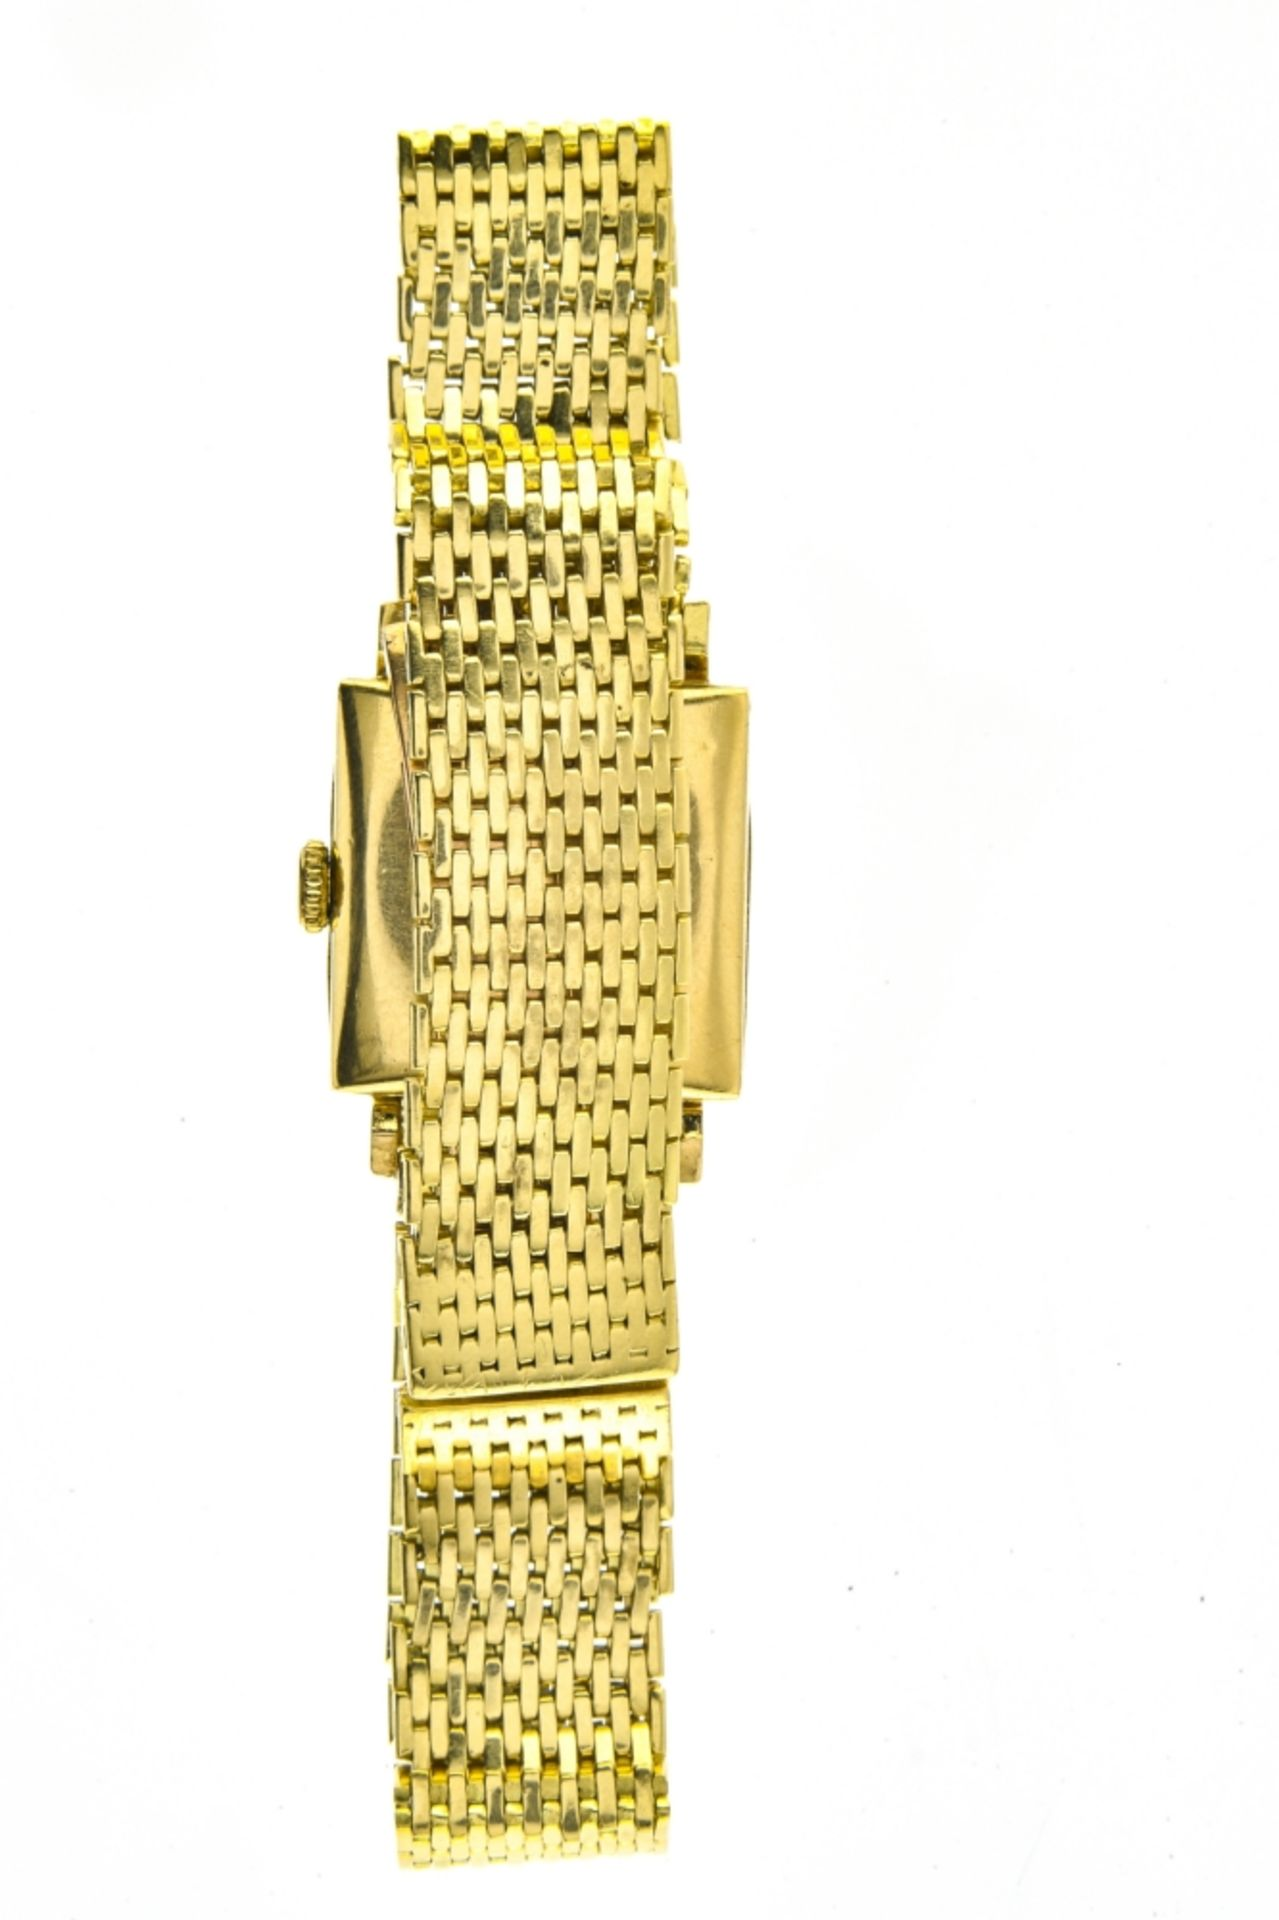 Square, yellow gold bracelet watch 18k yellow gold bracelet watch. Square, 18k yellow gold casing. - Image 3 of 4